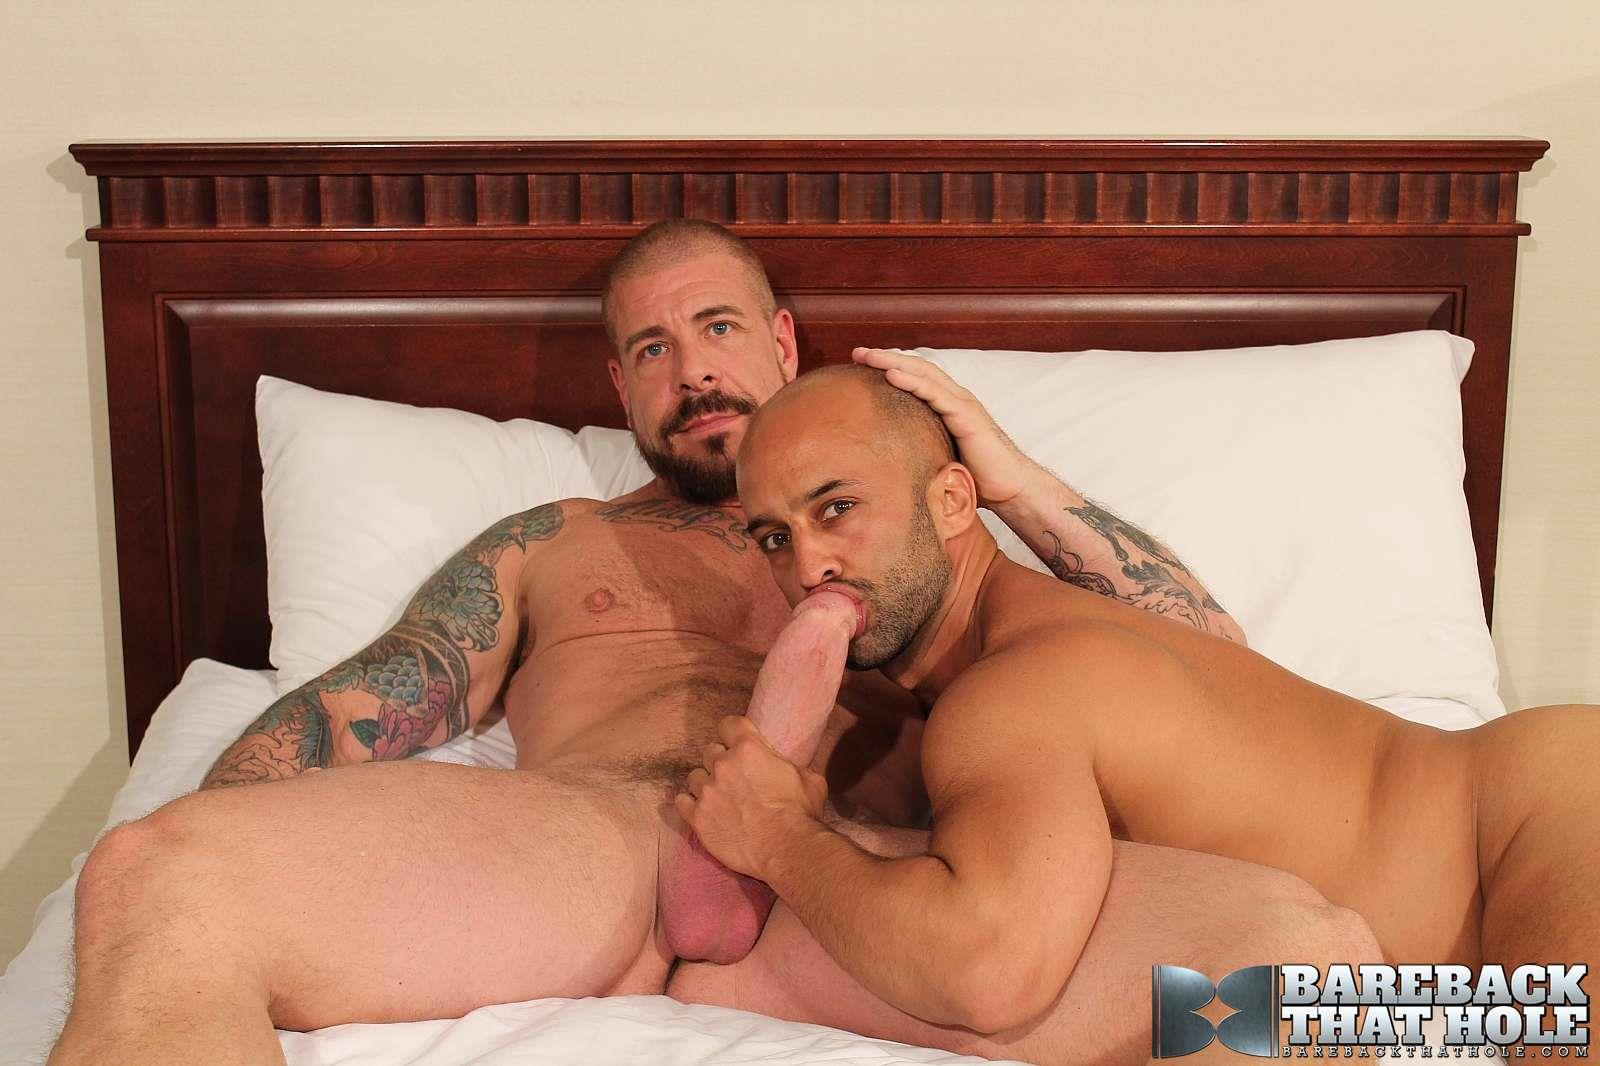 Bareback-That-Hole-Bareback-That-Hole-Rocco-Steele-and-Igor-Lukas-Huge-Cock-Barebacking-A-Tight-Ass-Amateur-Gay-Porn-19 Rocco Steele Tearing Up A Tight Ass With His Huge Cock